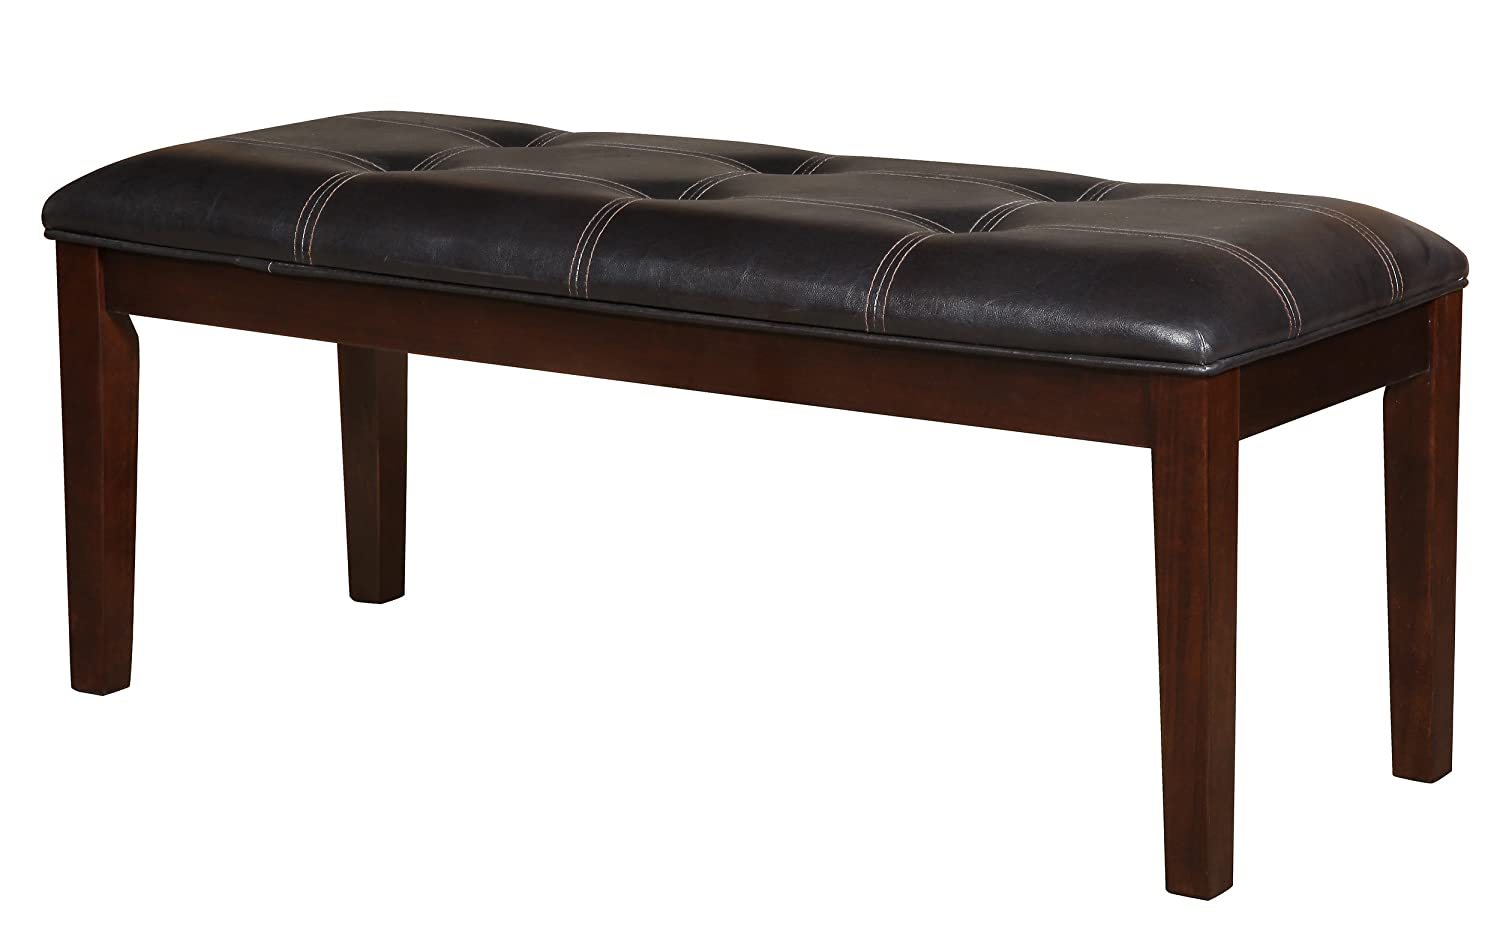 Homelegance 2456-13 Bench Upholstered, 49-Inch, Dark Brown Home Elegance - DROPSHIP